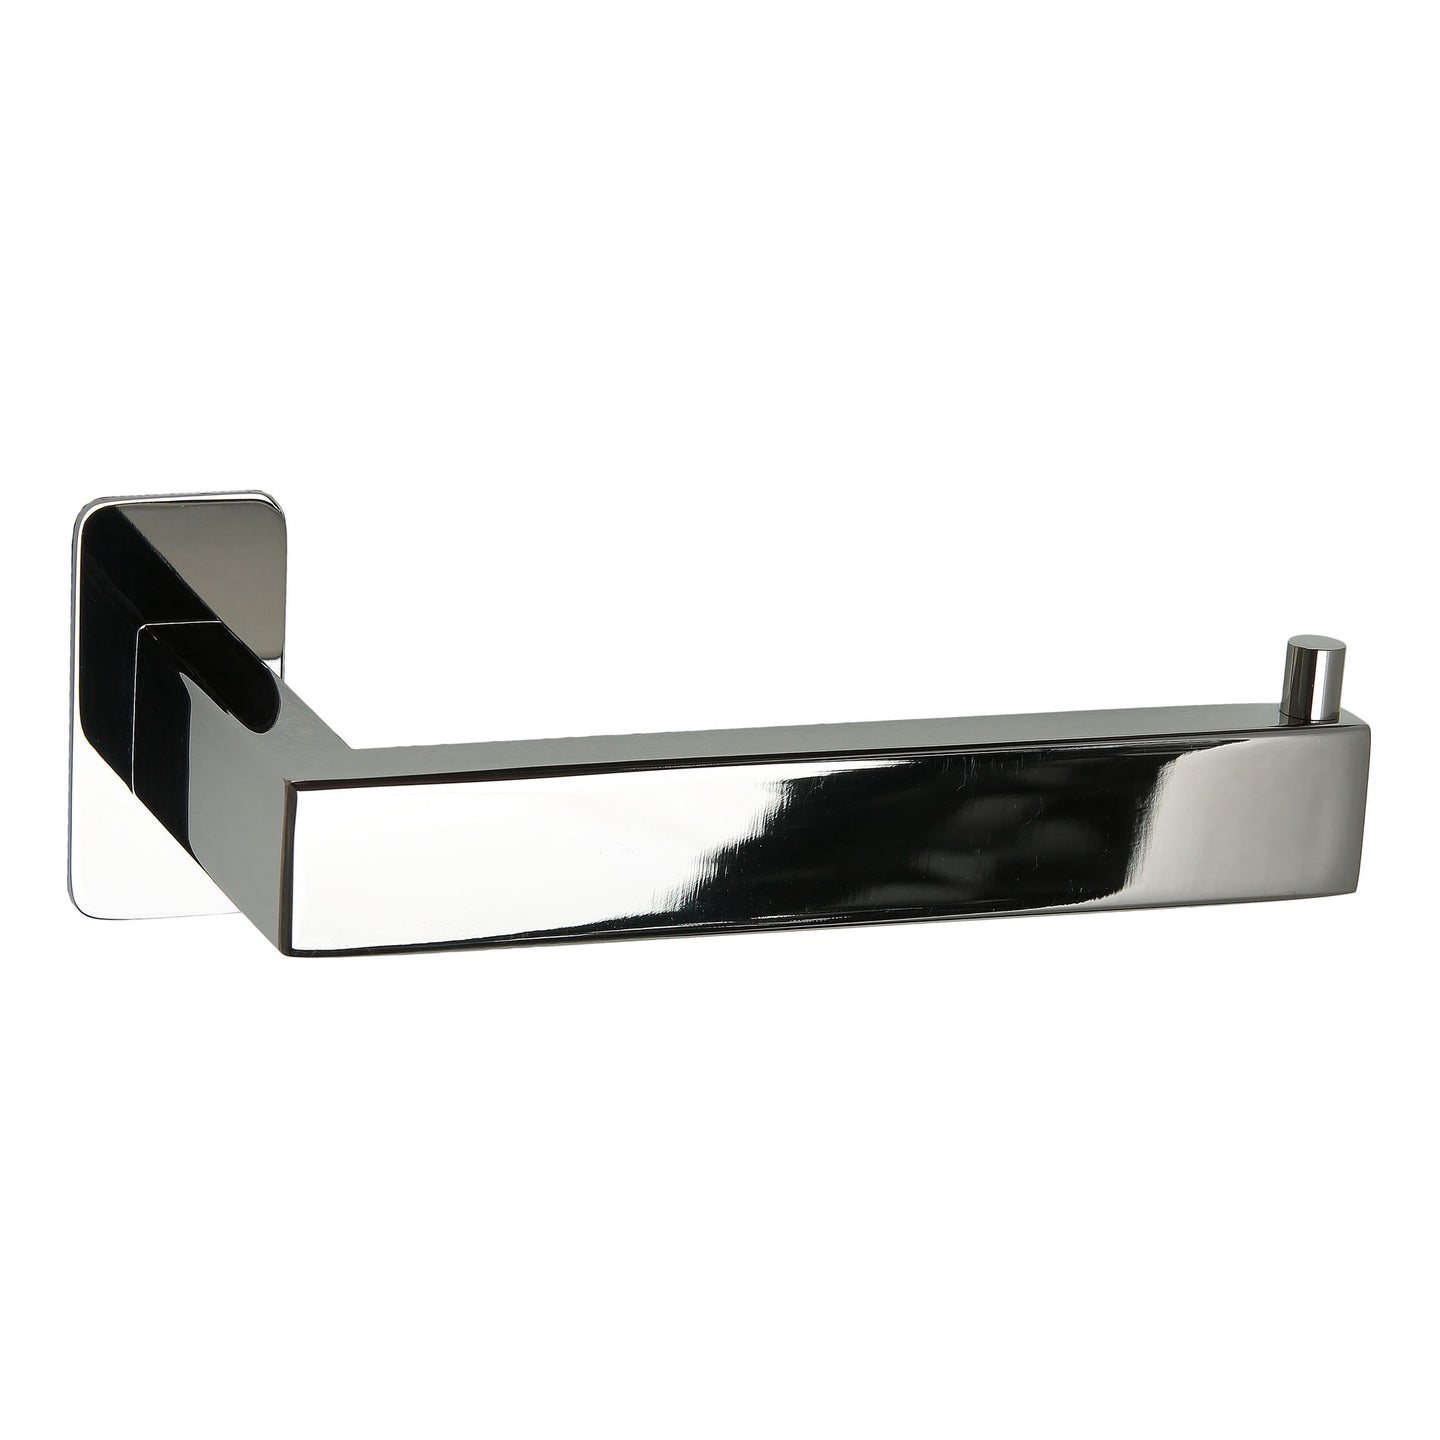 Rikke Contemporary Stainless Steel Wall Mounted Toilet Paper Holder, Chrome